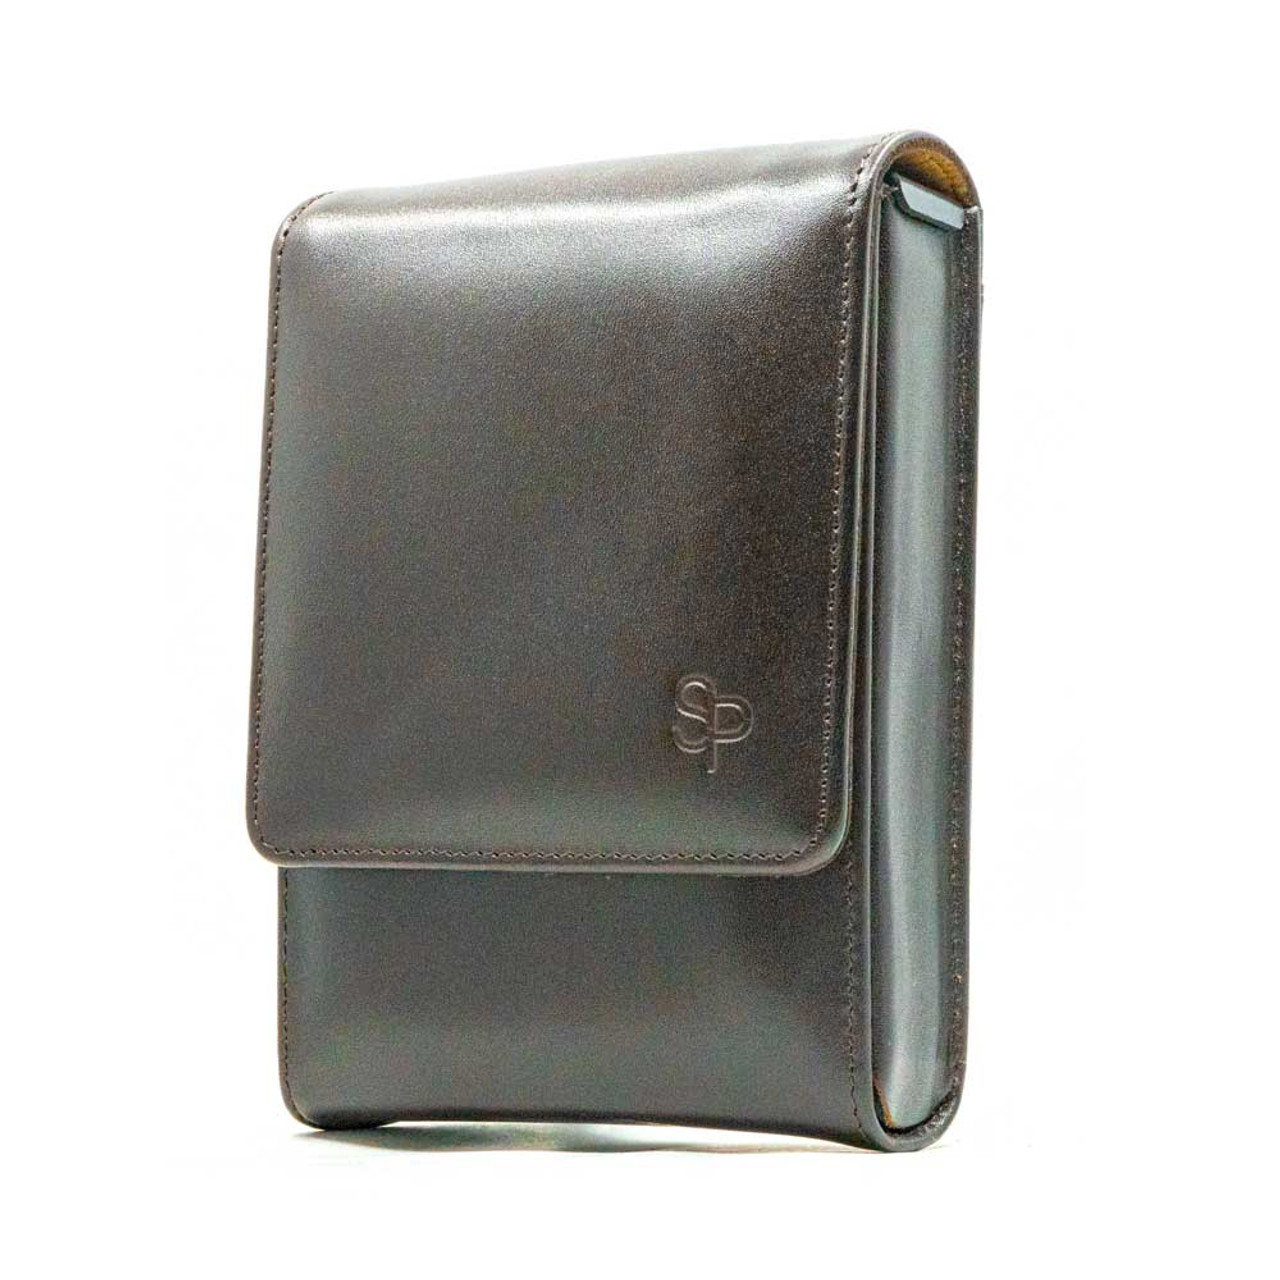 Walther PPK/S Brown Leather Series Holster